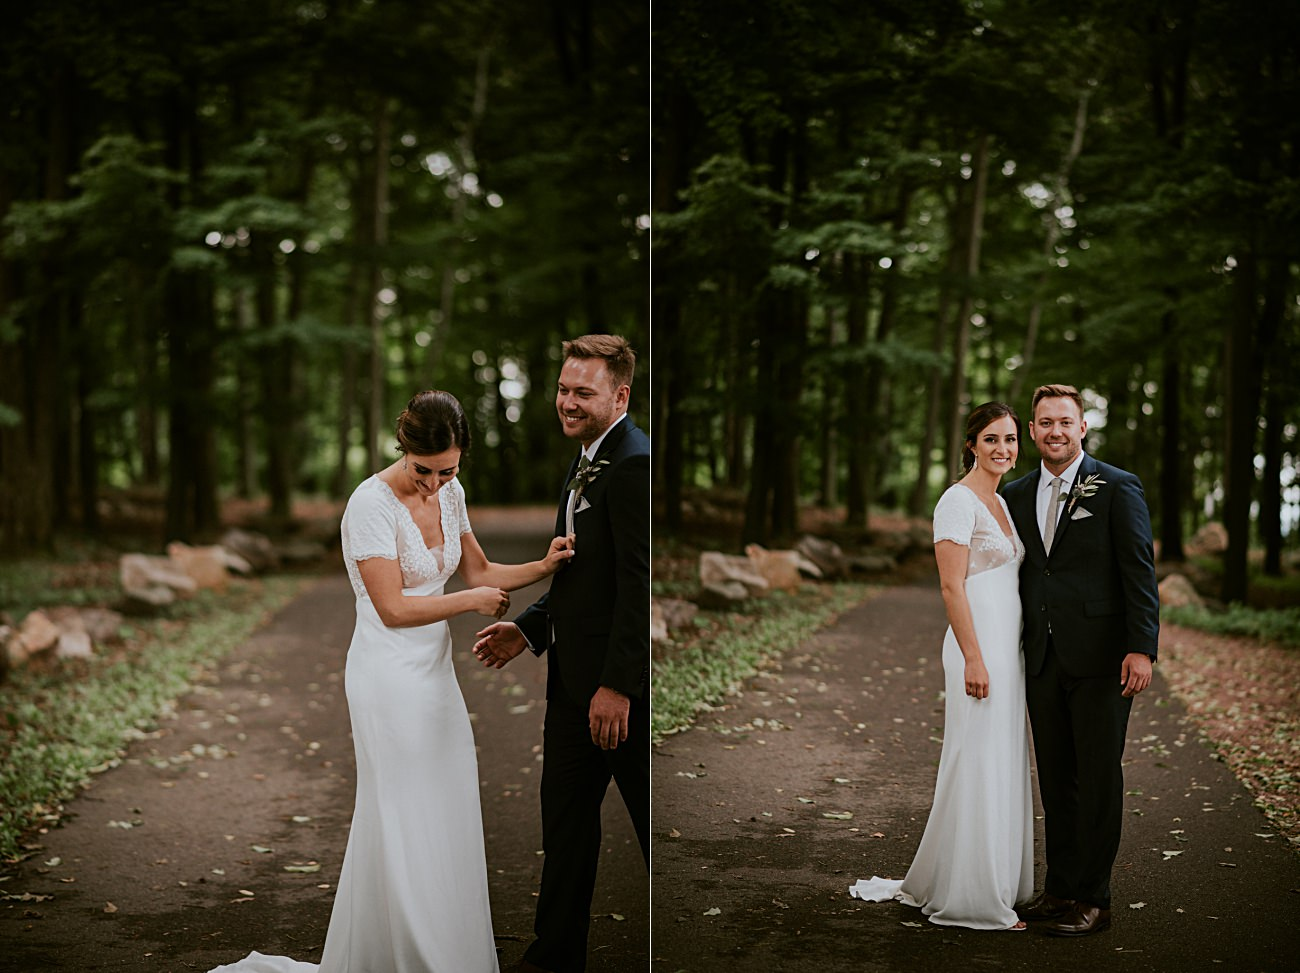 Mountaintop Wedding, Wedding Dress with sleeves, Rib Mountain Wedding in Wausau Wisconsin - Mountaintop Wedding, Wisconsin Wedding - Natural Intuition Photography